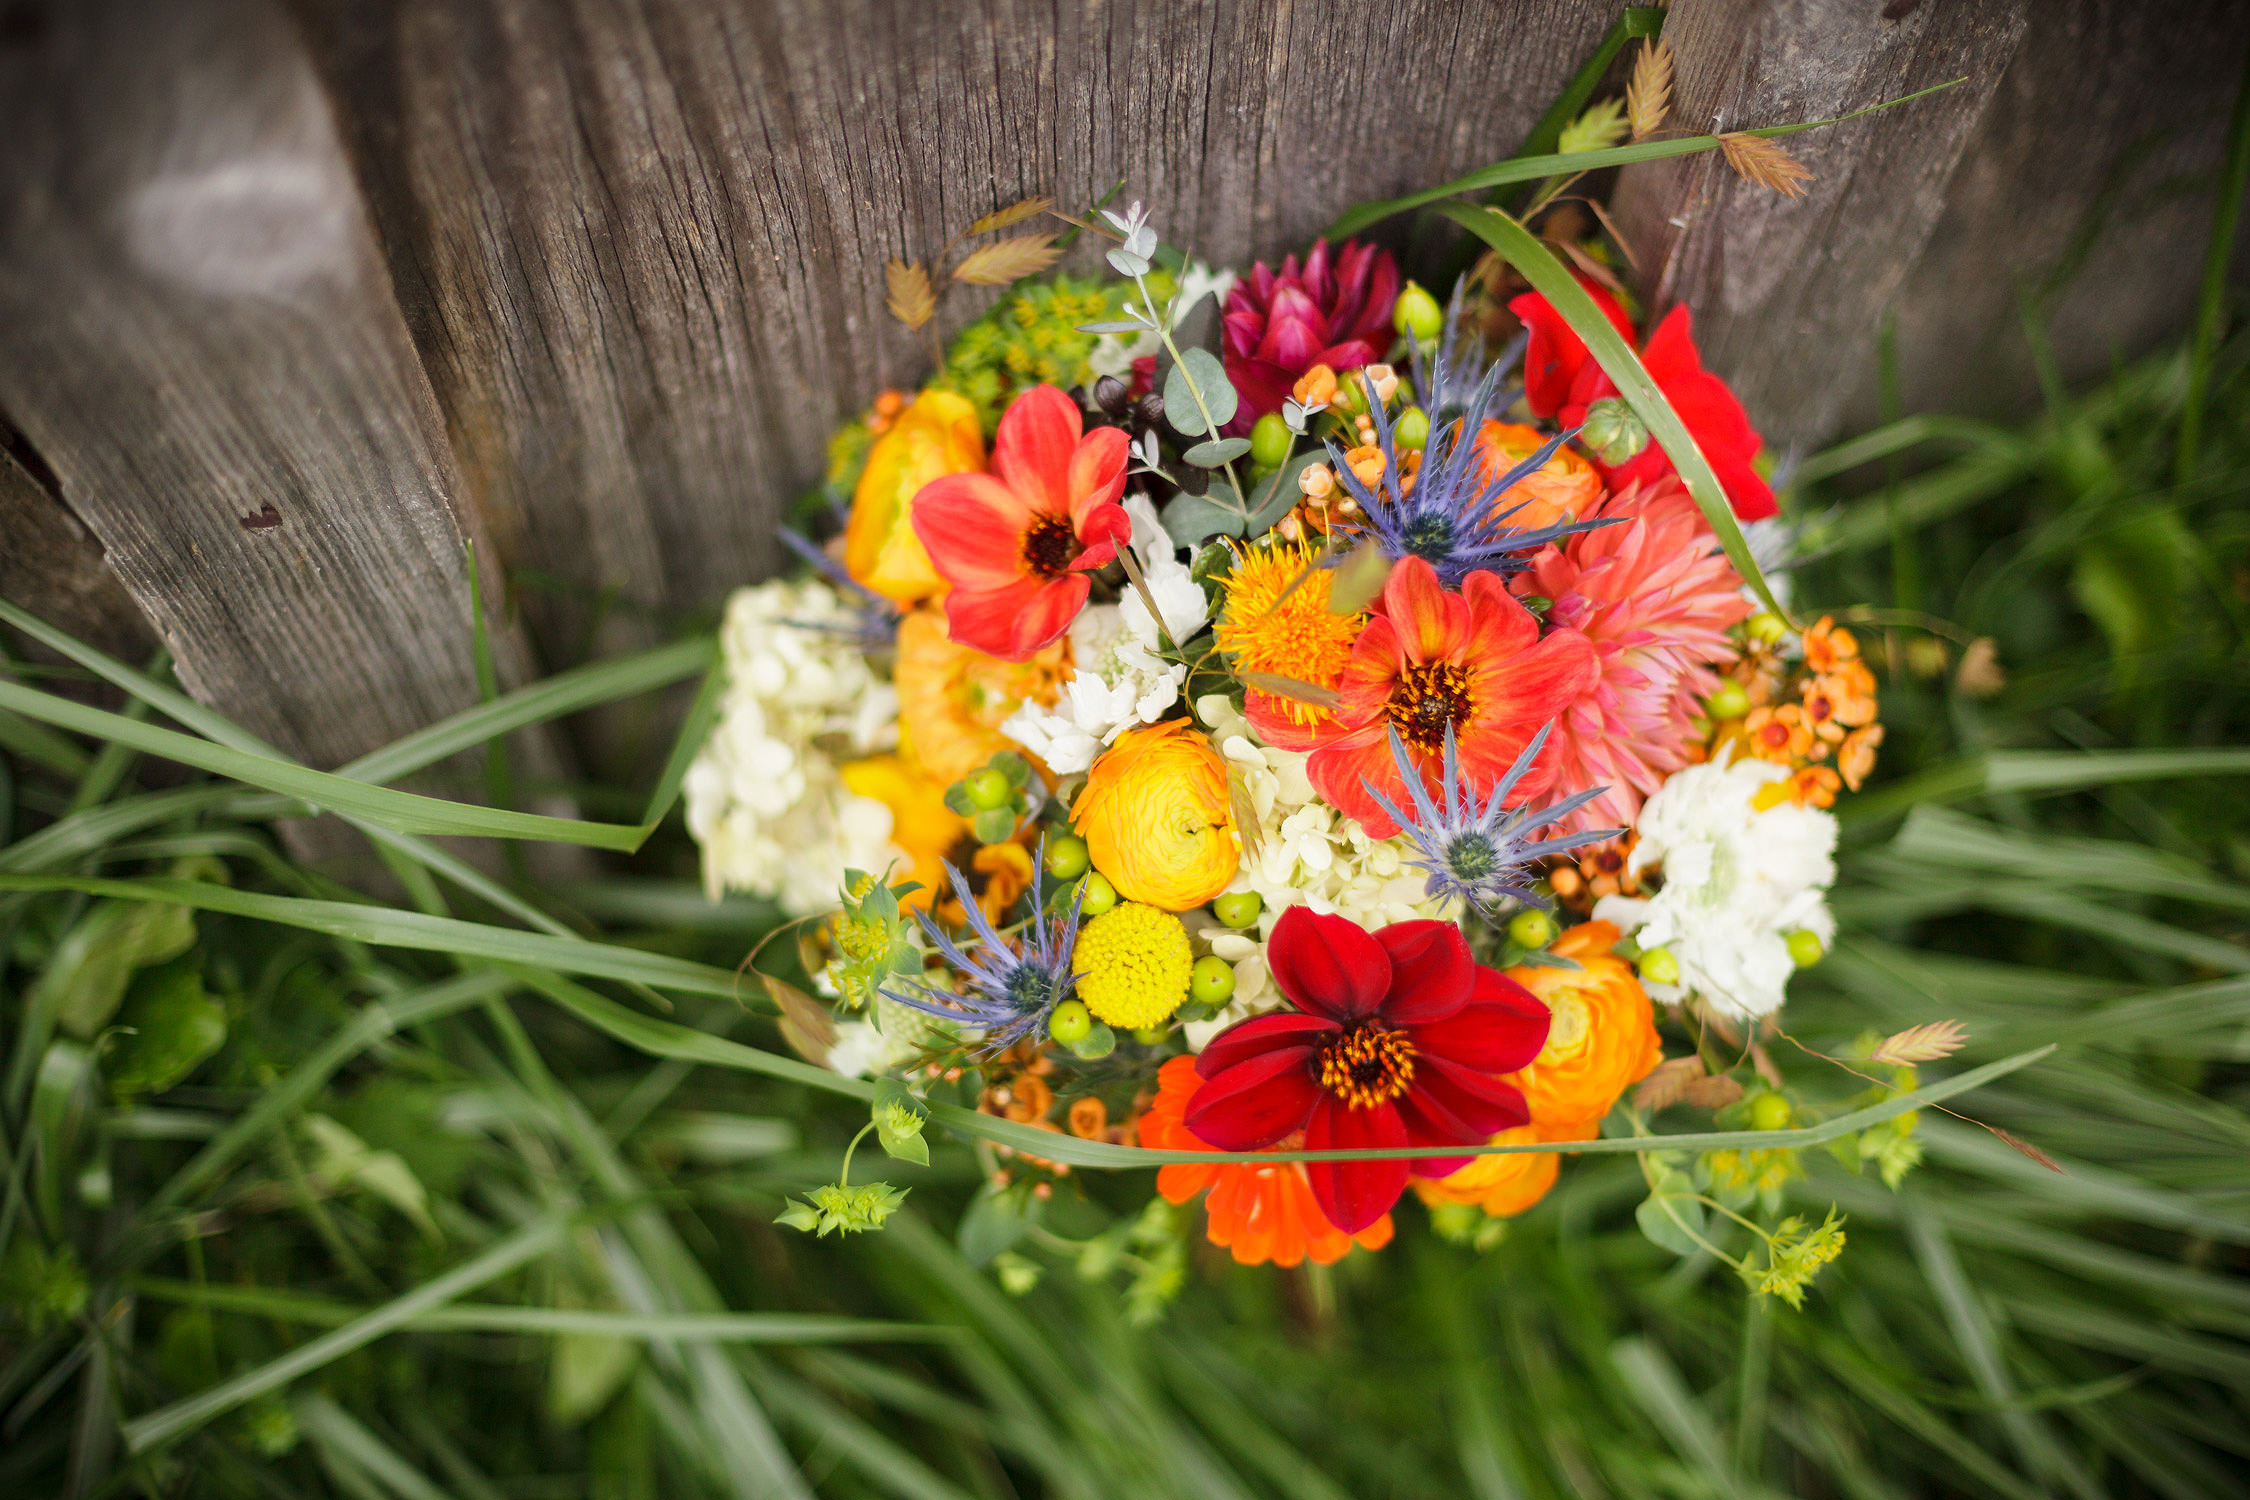 A bright red orange and yellow wedding bouquet